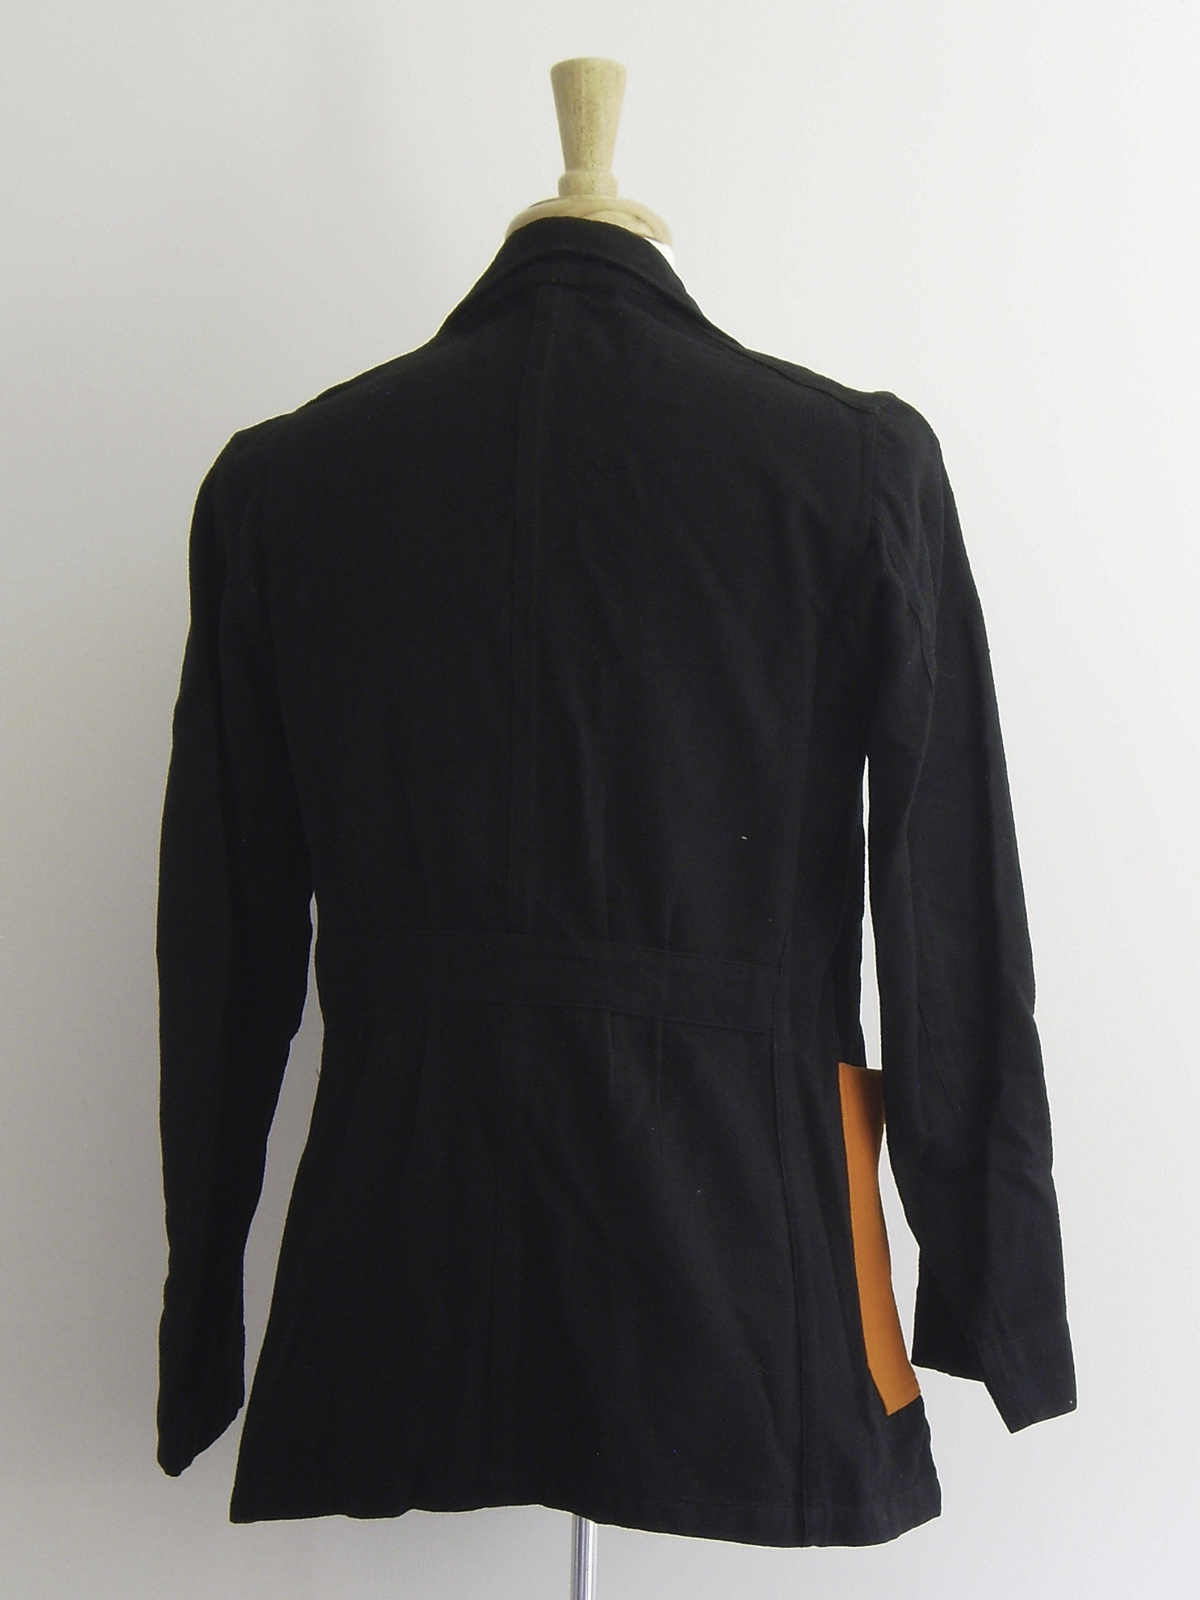 Reunion Jacket 1913 Variation 2 Rear